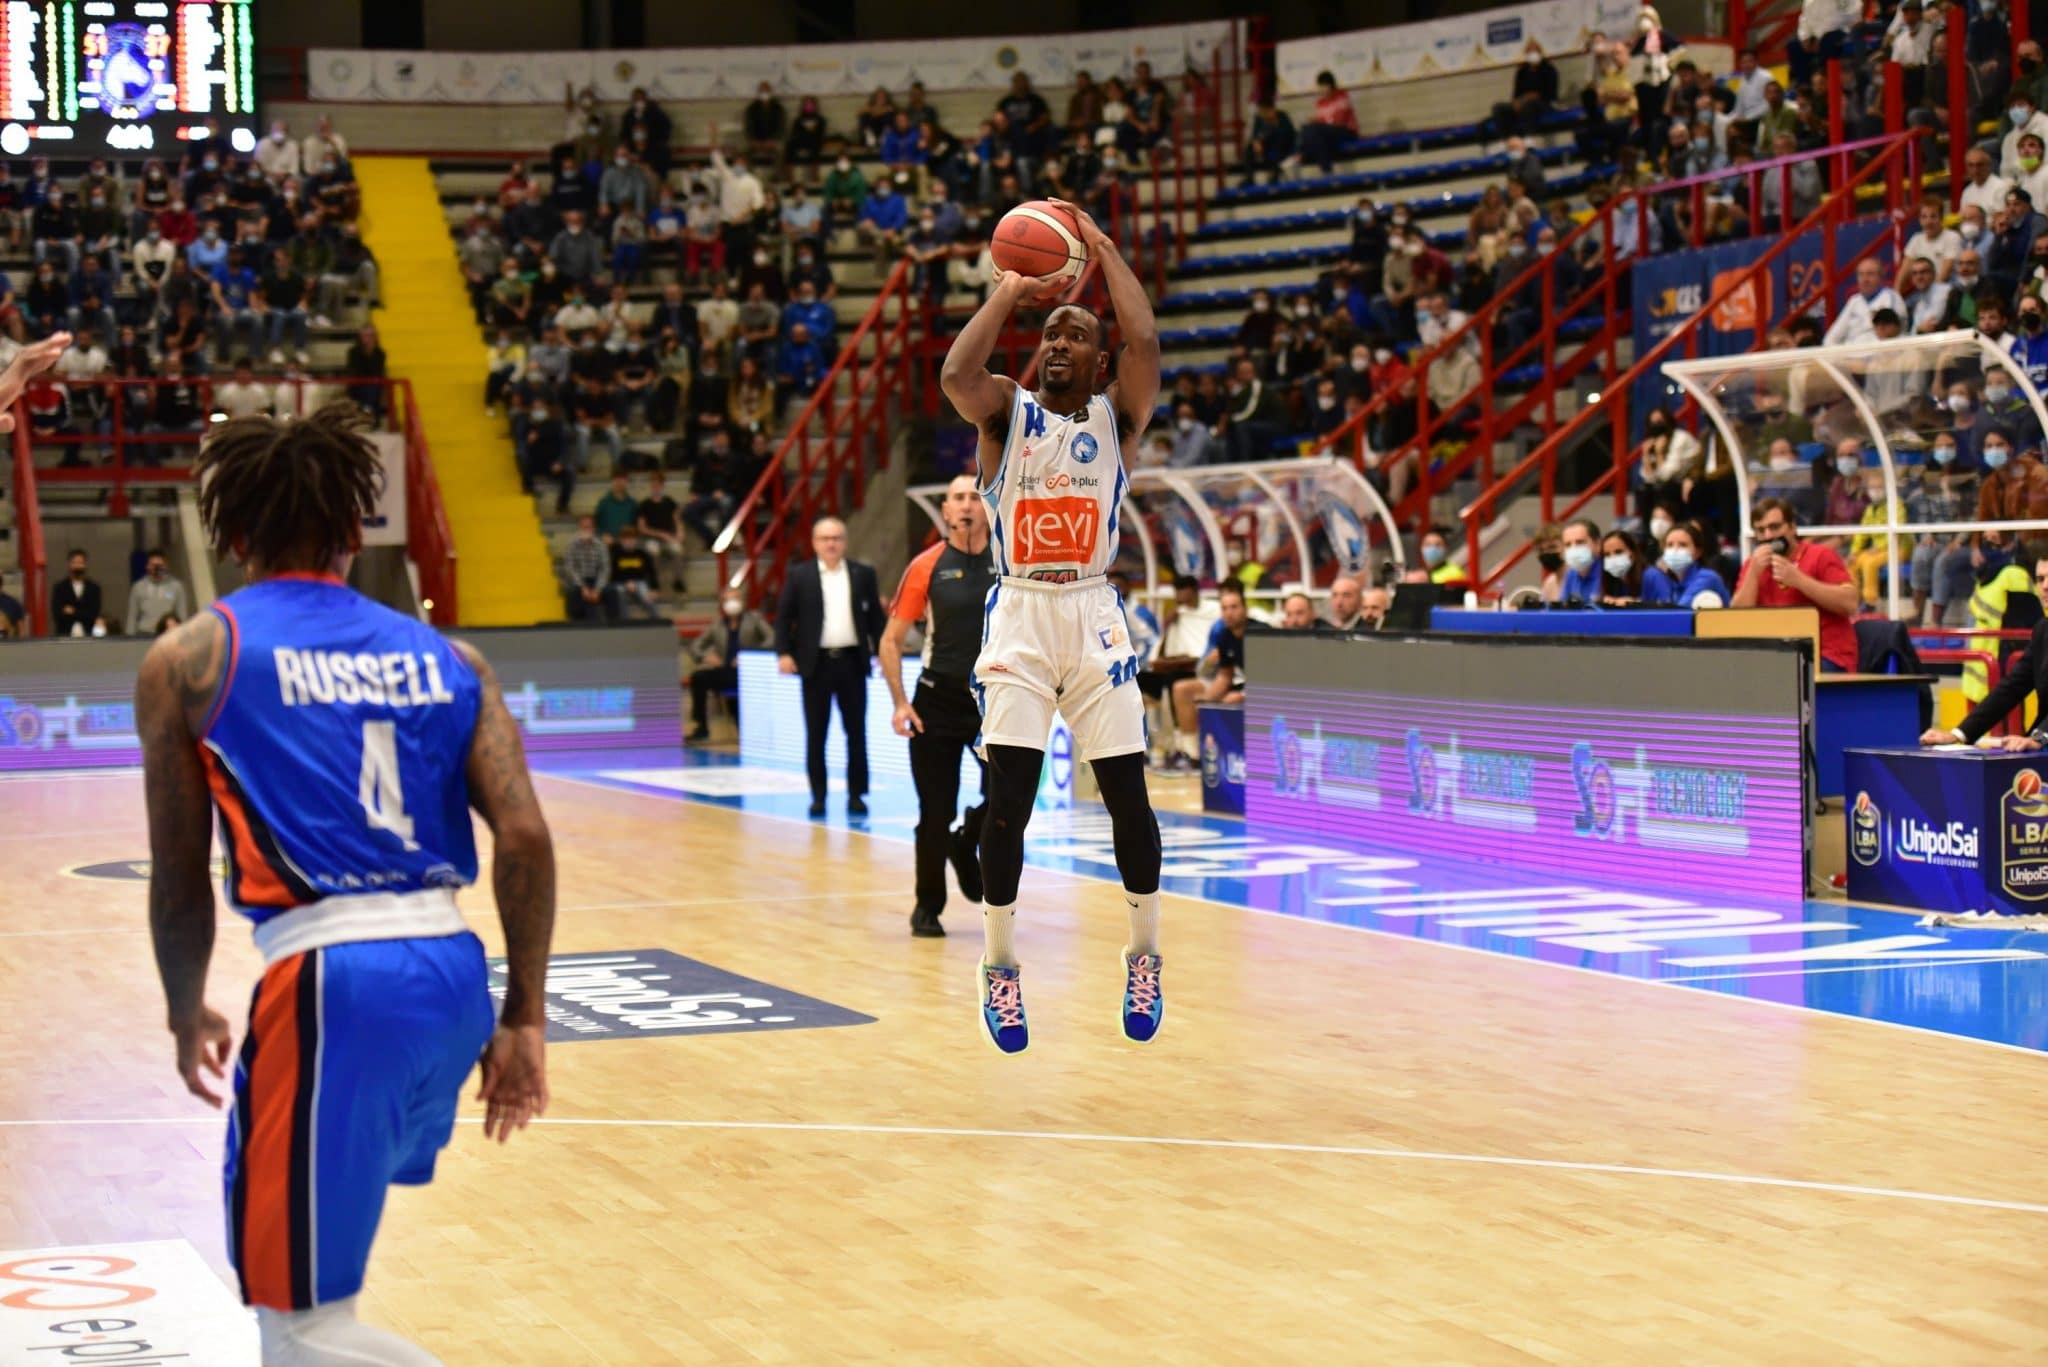 NAPLES, ITALY - 2021/10/10: Napoli's point guard Josh Mayo in action during third match of Italian Serie A league between Gevi Napoli and Nutribullet Treviso . Napoli team won the game for 82 70. (Photo by Paola Visone/Pacific Press/LightRocket via Getty Images)